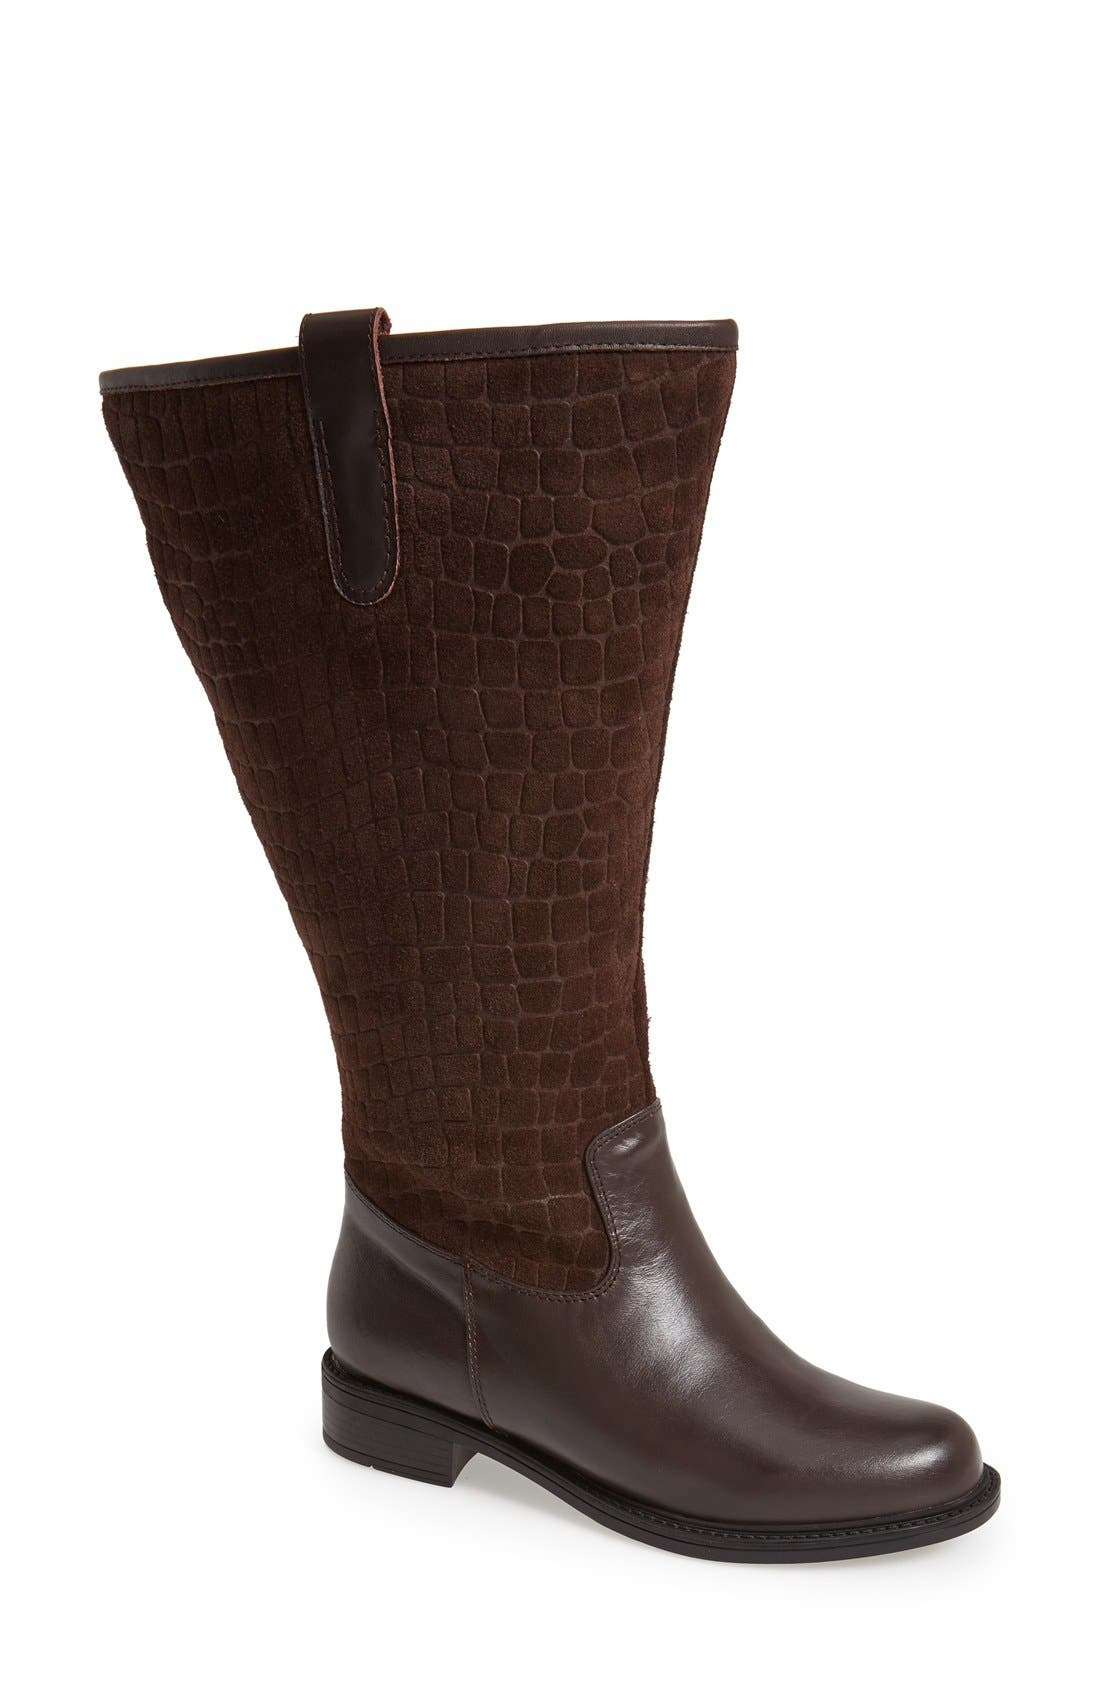 'Best' Calfskin Leather & Suede Boot,                         Main,                         color, Brown Calf/ Suede